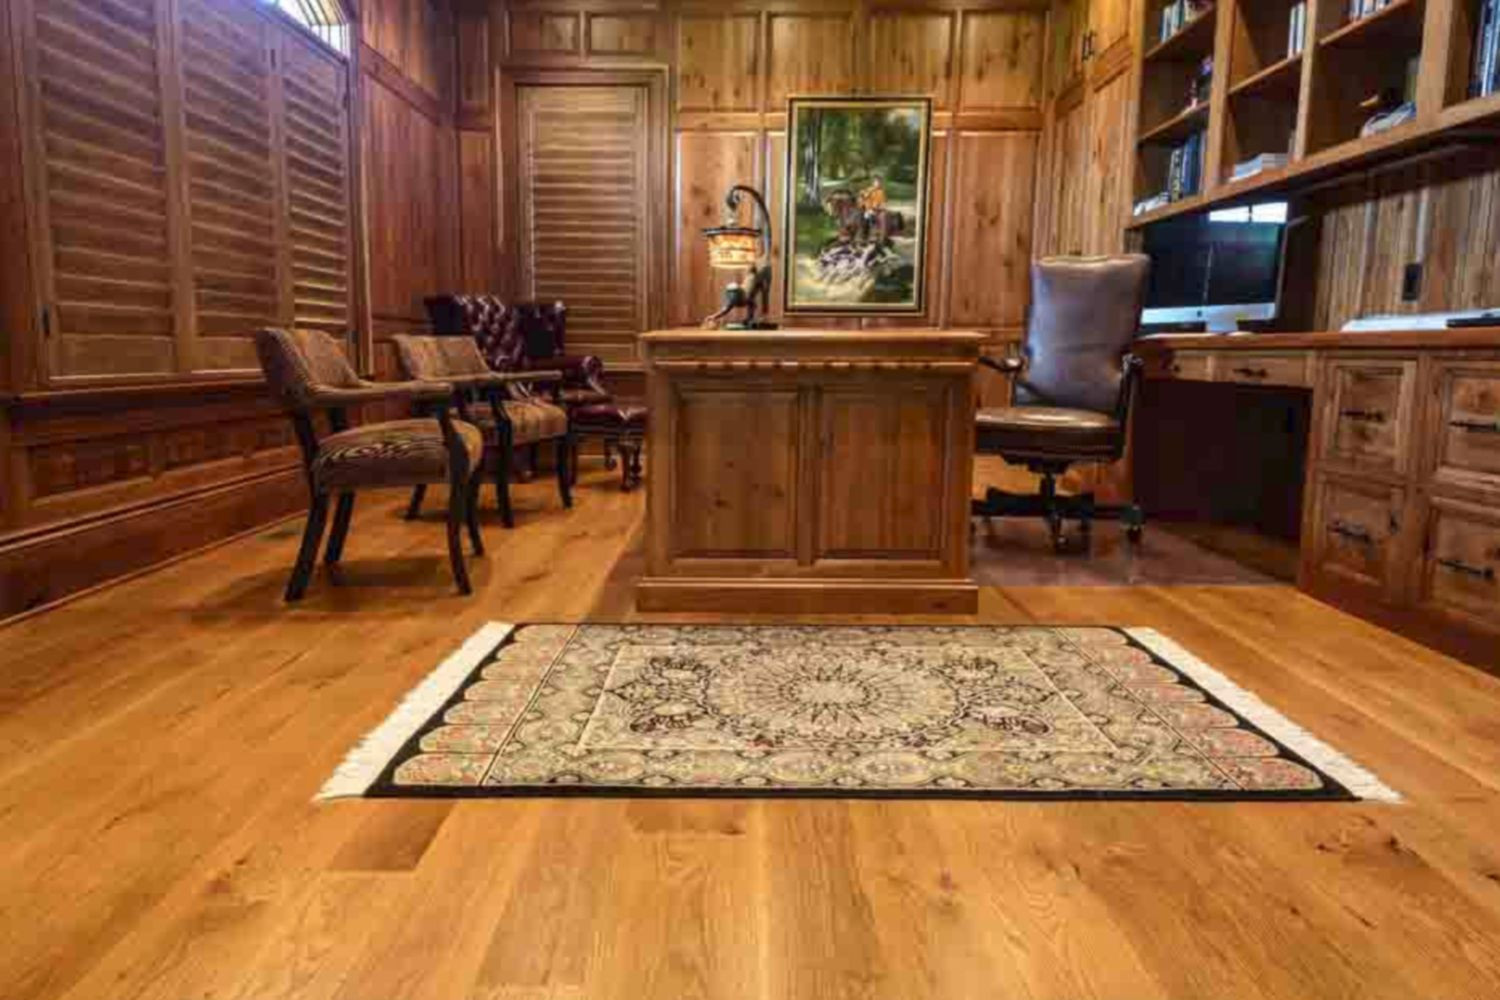 bruce hickory hardwood flooring of top 5 brands for solid hardwood flooring with the woods company white oak 1500 x 1000 56a49f6d5f9b58b7d0d7e1db